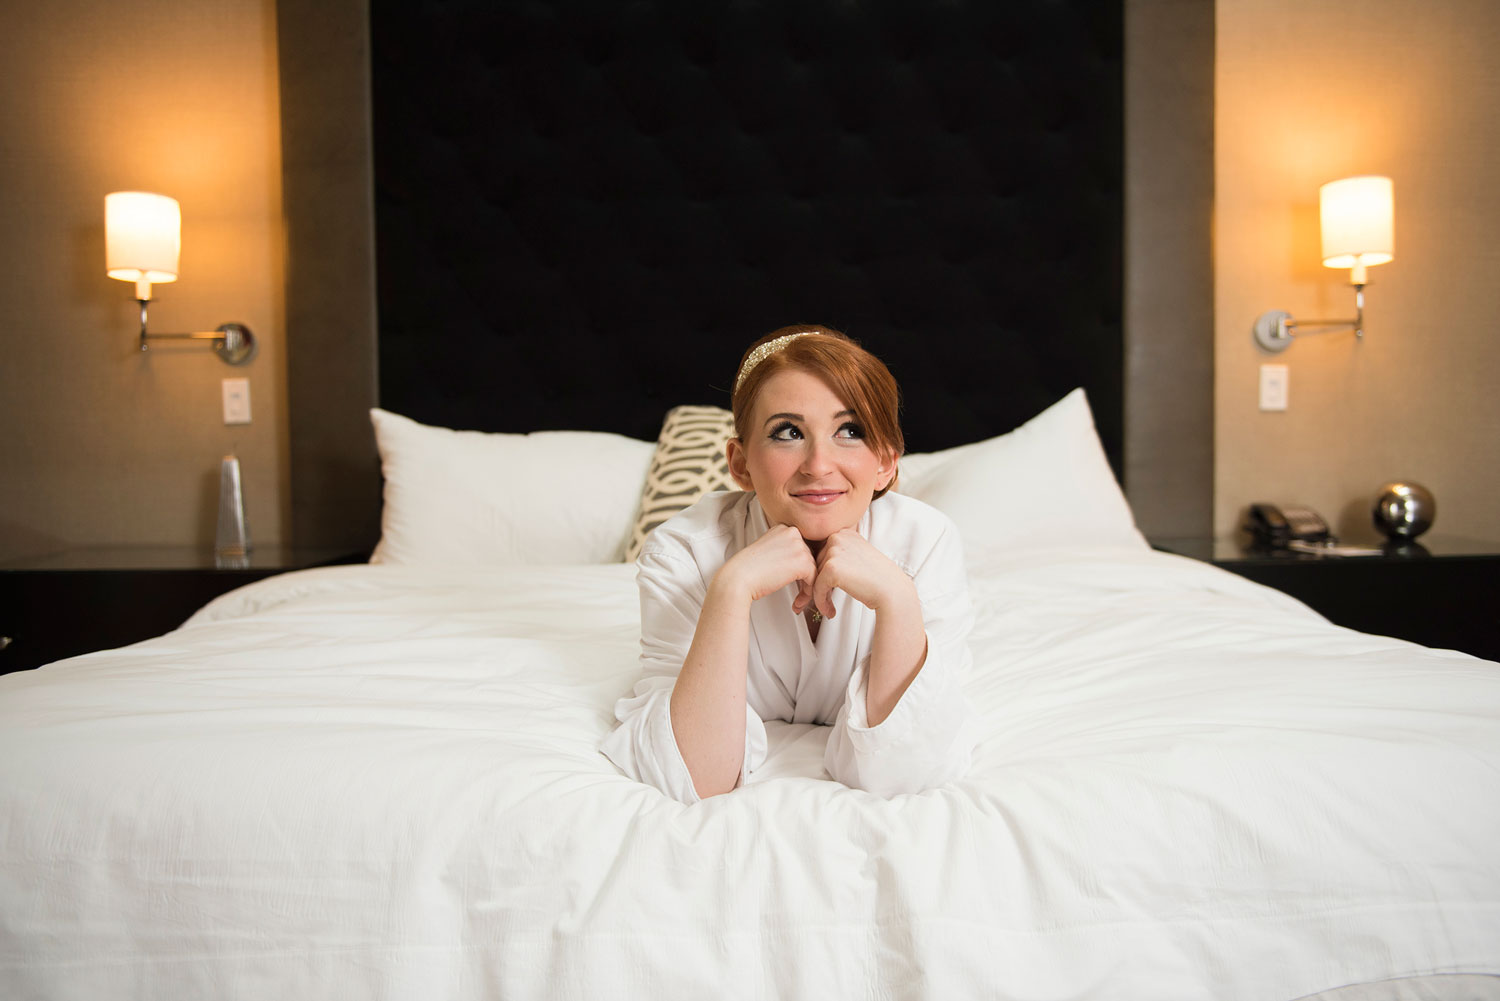 Bride laying down on her bad smiling before her wedding at blackstone hotel.